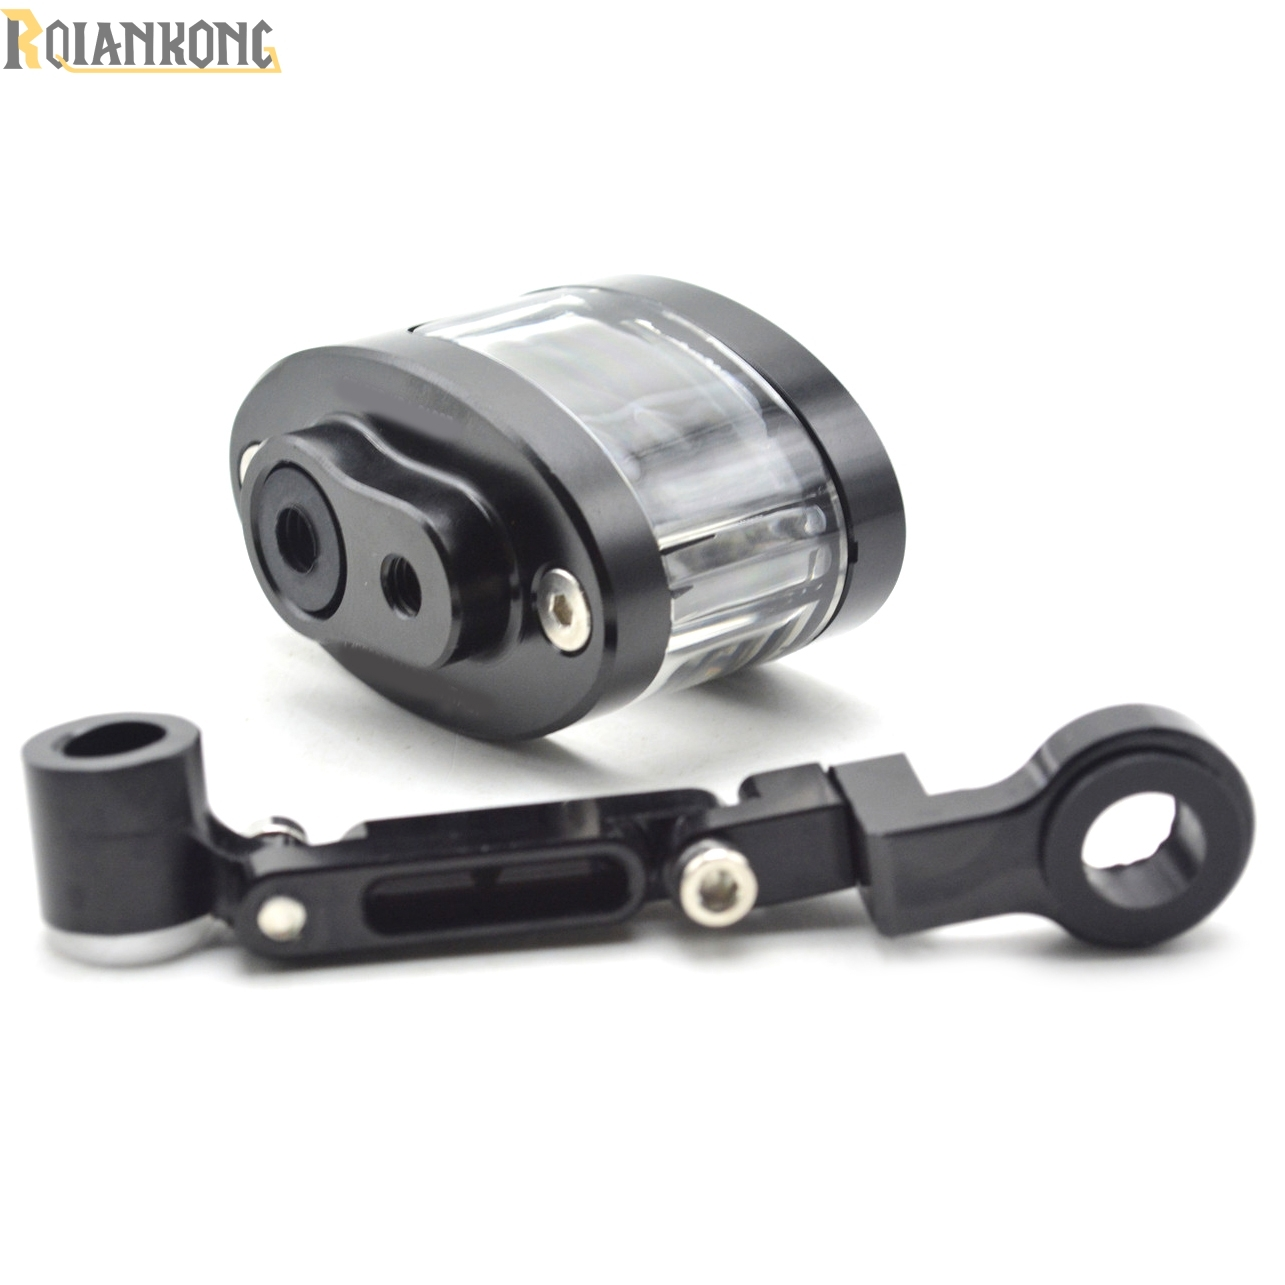 Hot!!New! Motorcycle Brake Fluid Reservoir Oil Tank have mounting kit For Ducati 1000SS 916 916SPS 996 998 999 B S R Diavel